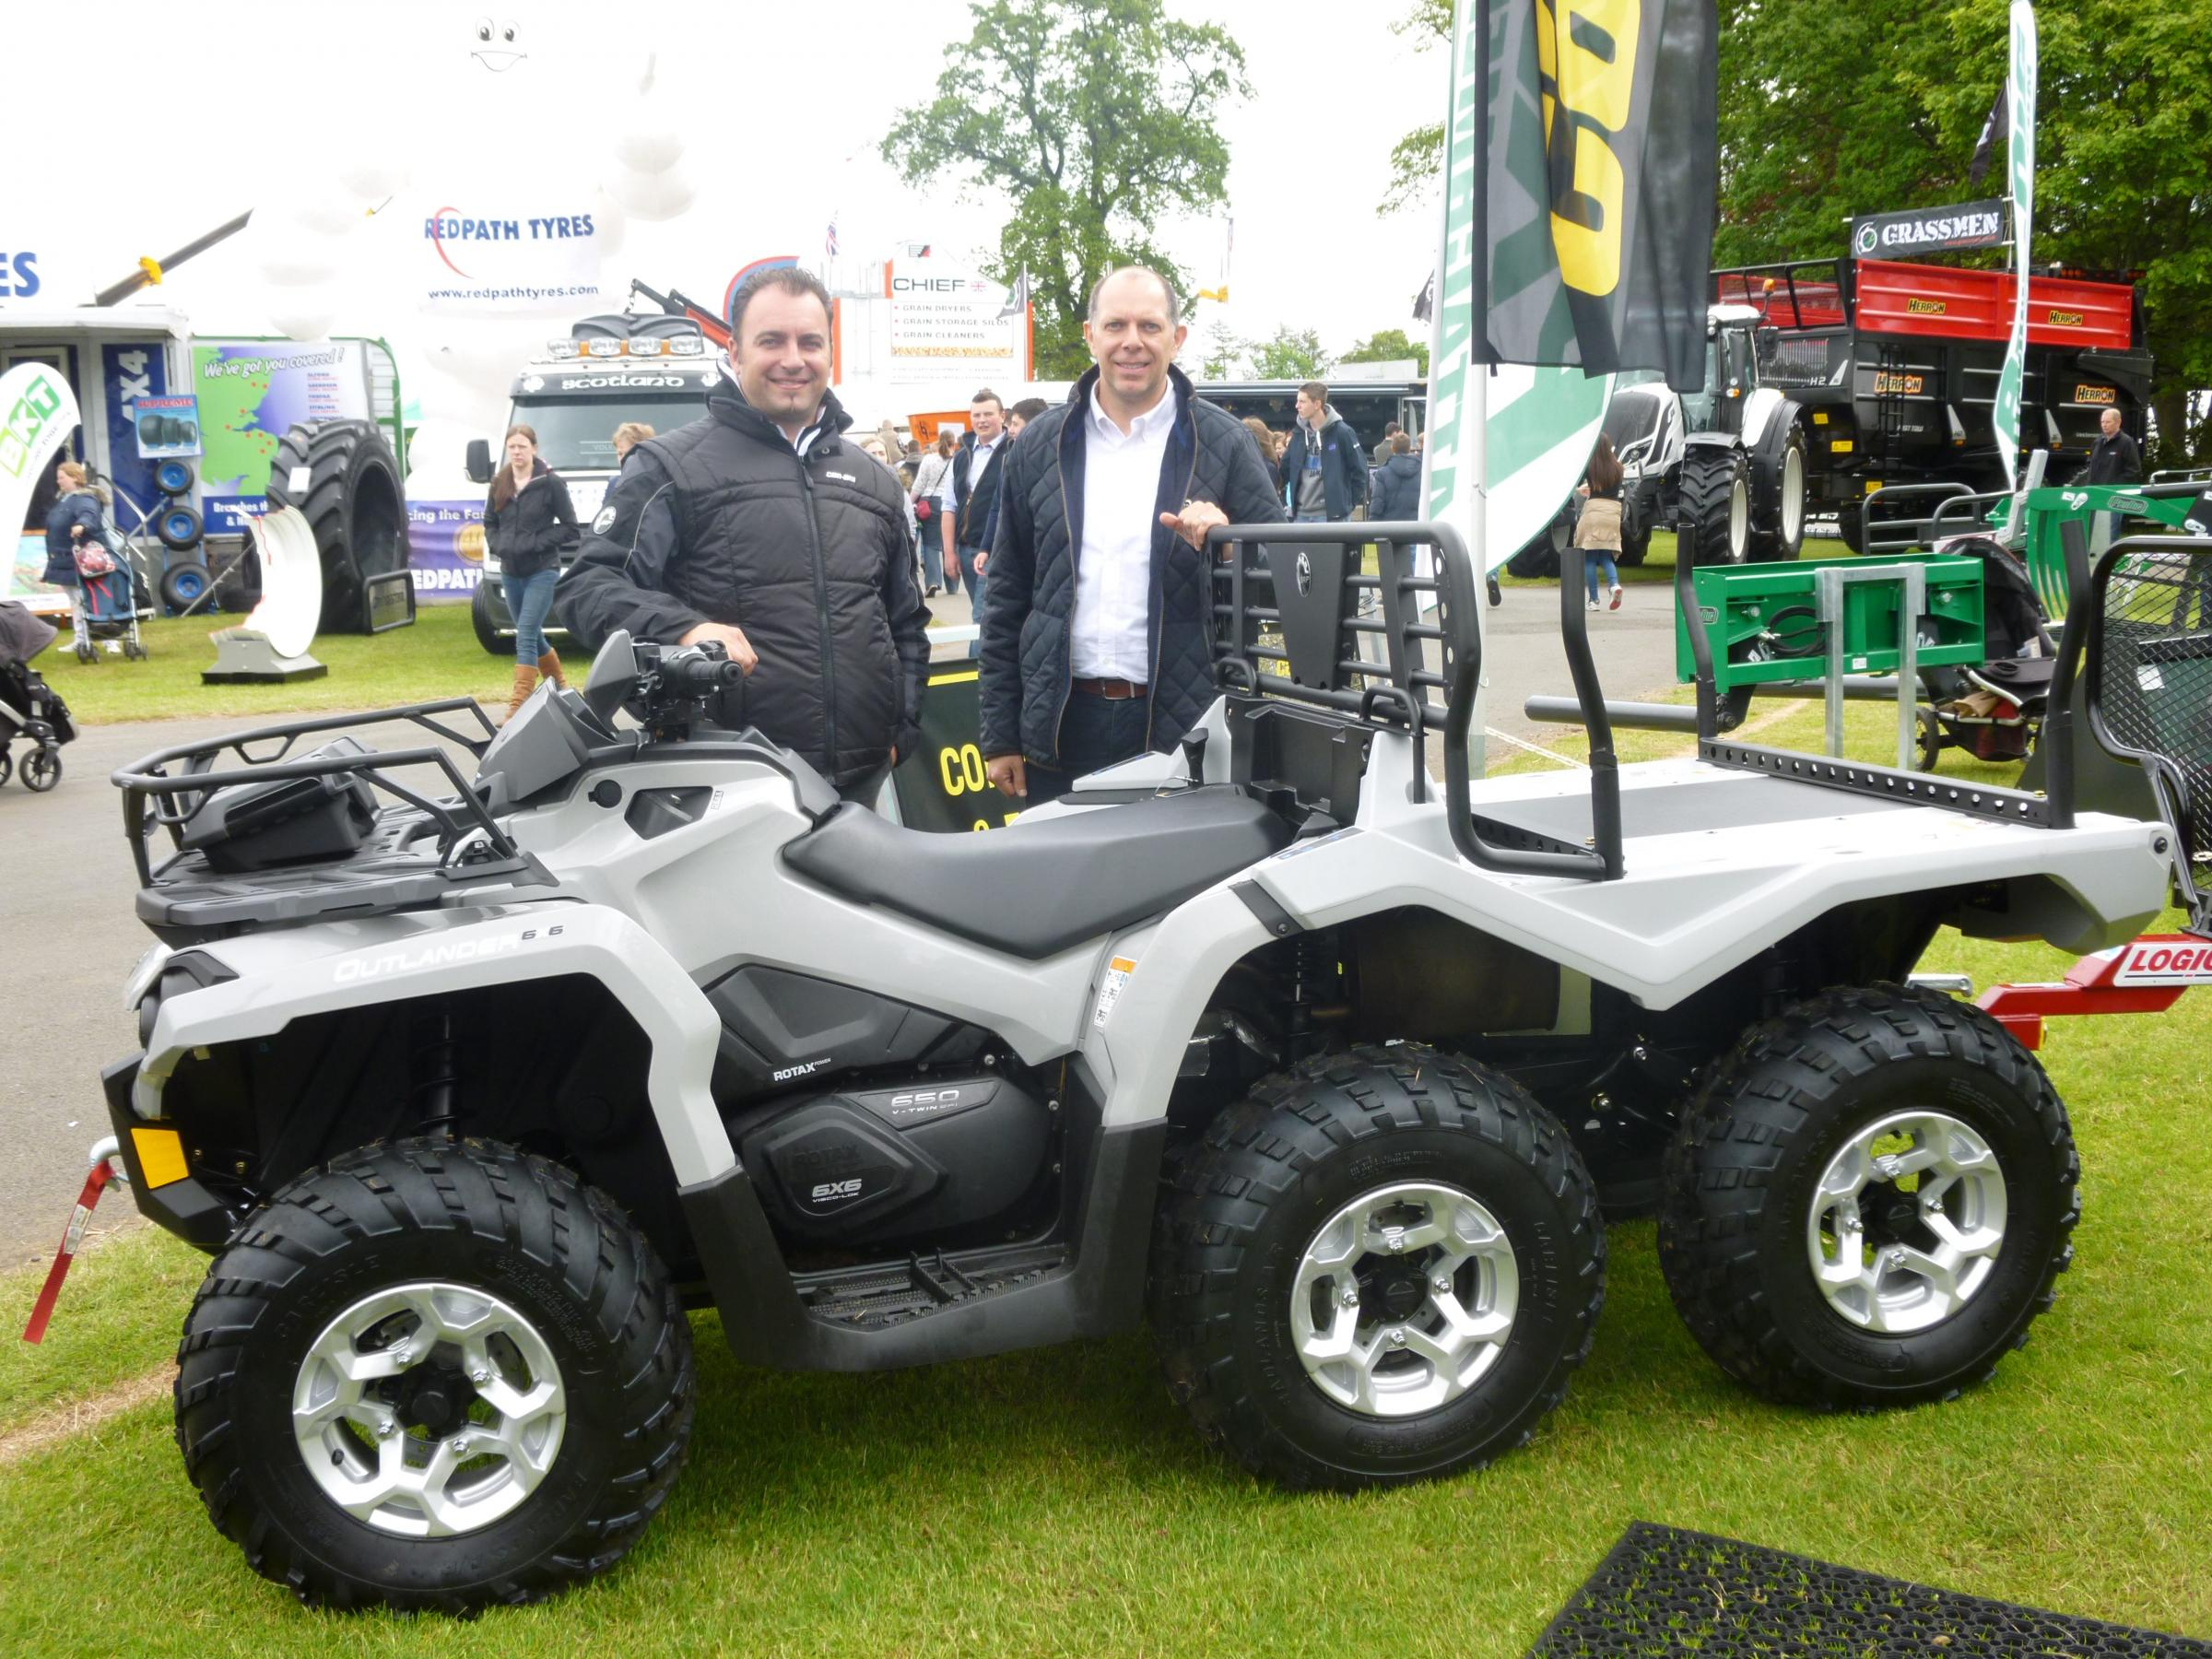 BRP's sales increase means a promising time for ATV industry